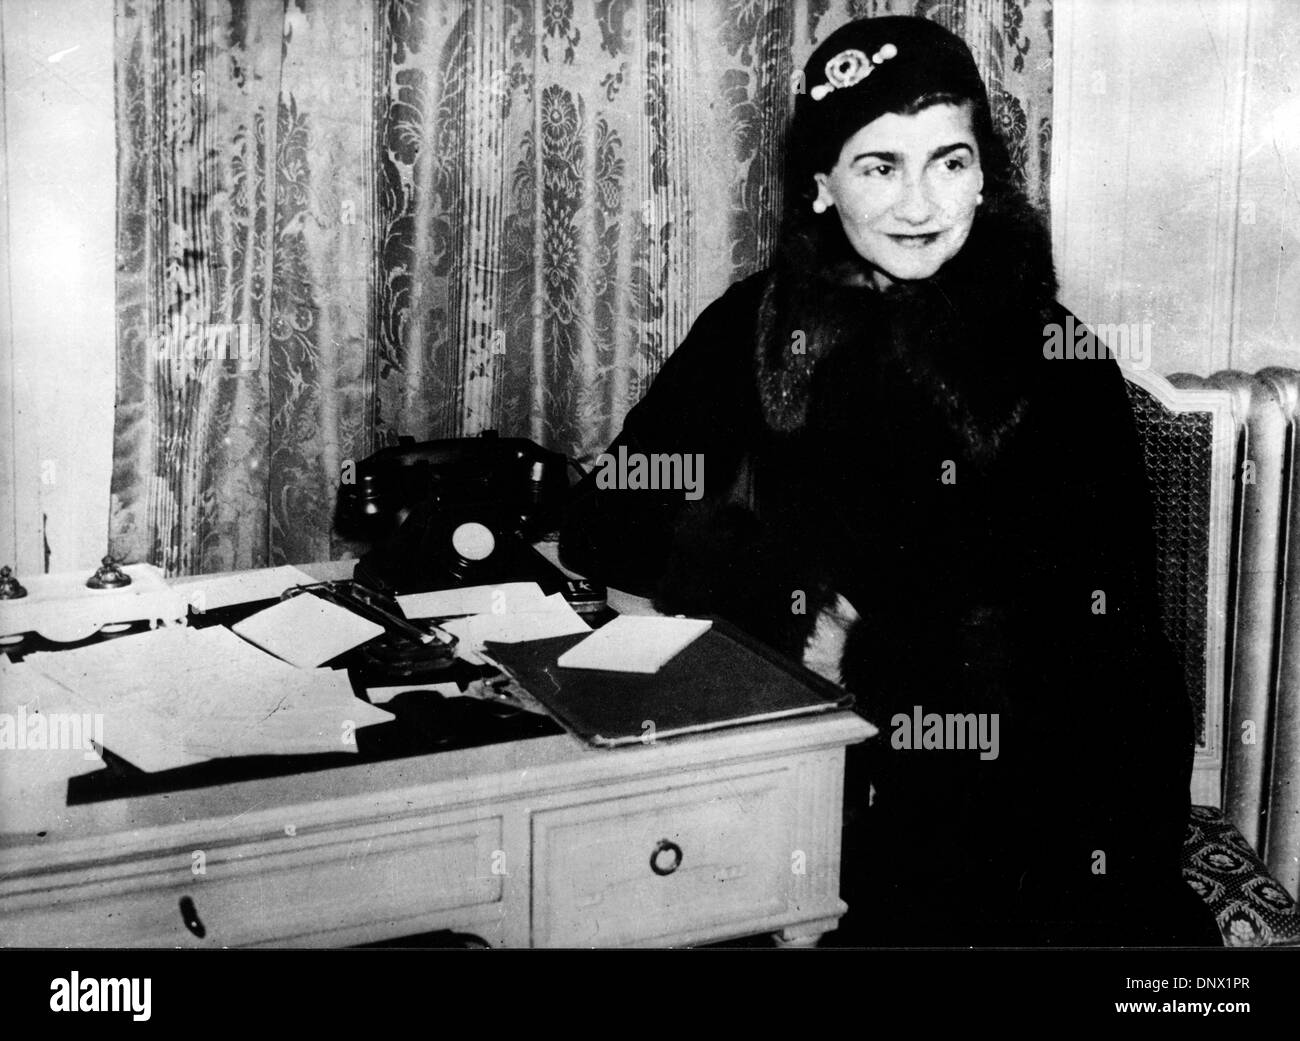 8155d31c2a0 Gabrielle Chanel Photos   Gabrielle Chanel Images - Alamy